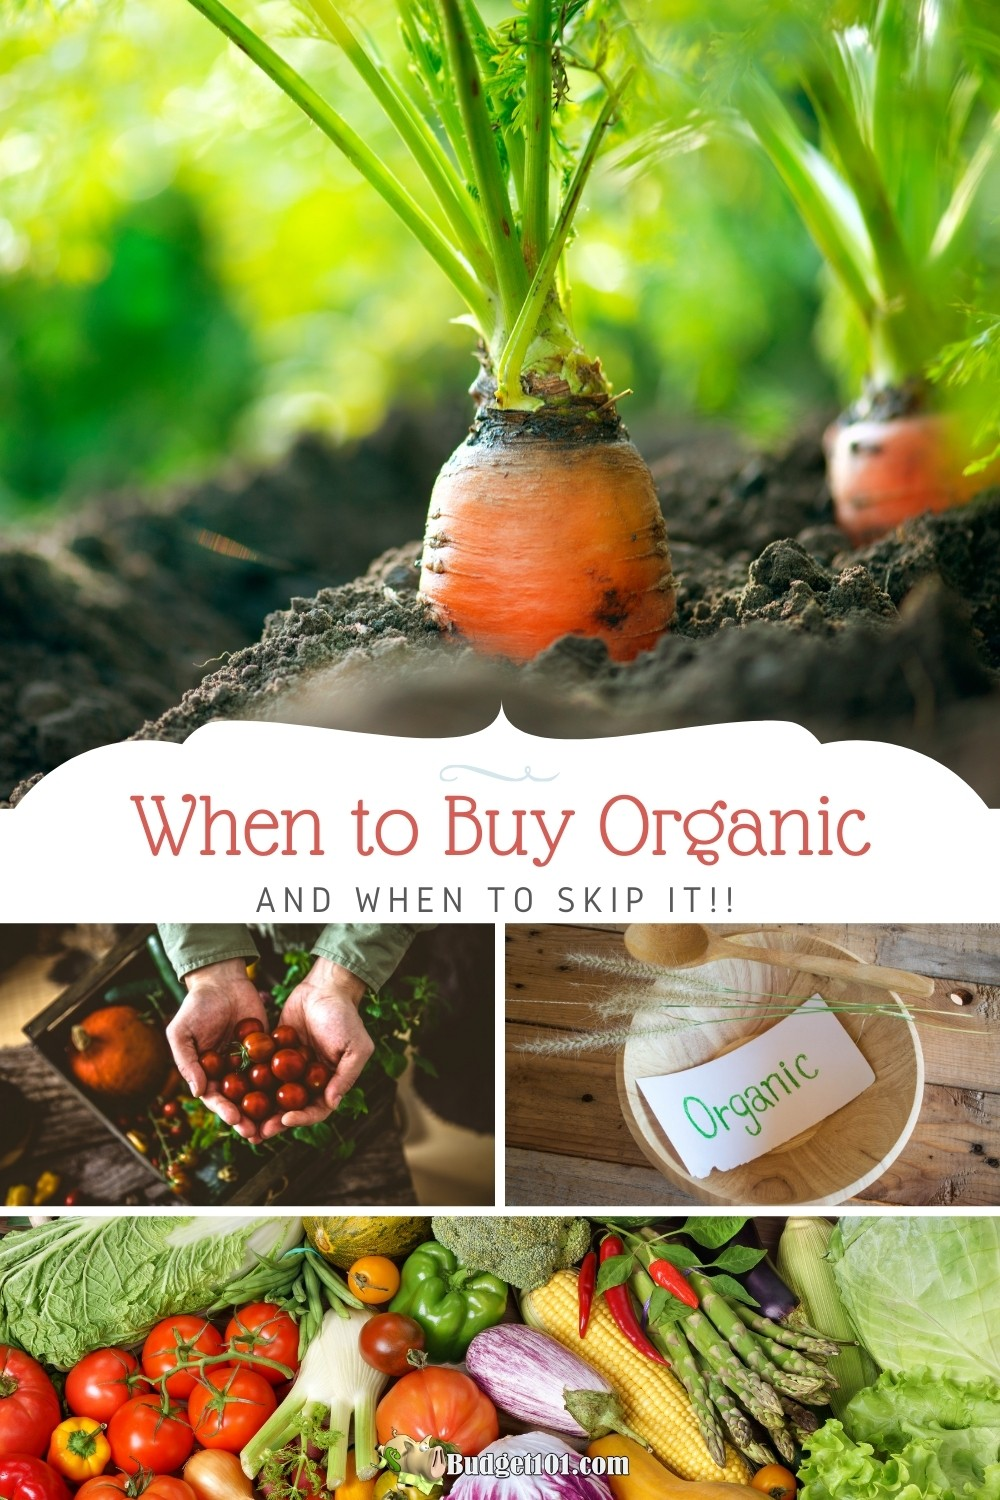 Tired of wasting money on groceries? Learn when to buy organic, and when you should skip it! From the dirty dozen to the clean fifteen, here's how to save on organic produce #Budget101 #Organic #GrowOrganic #BuyOrganic #DirtyDozen #Clean15